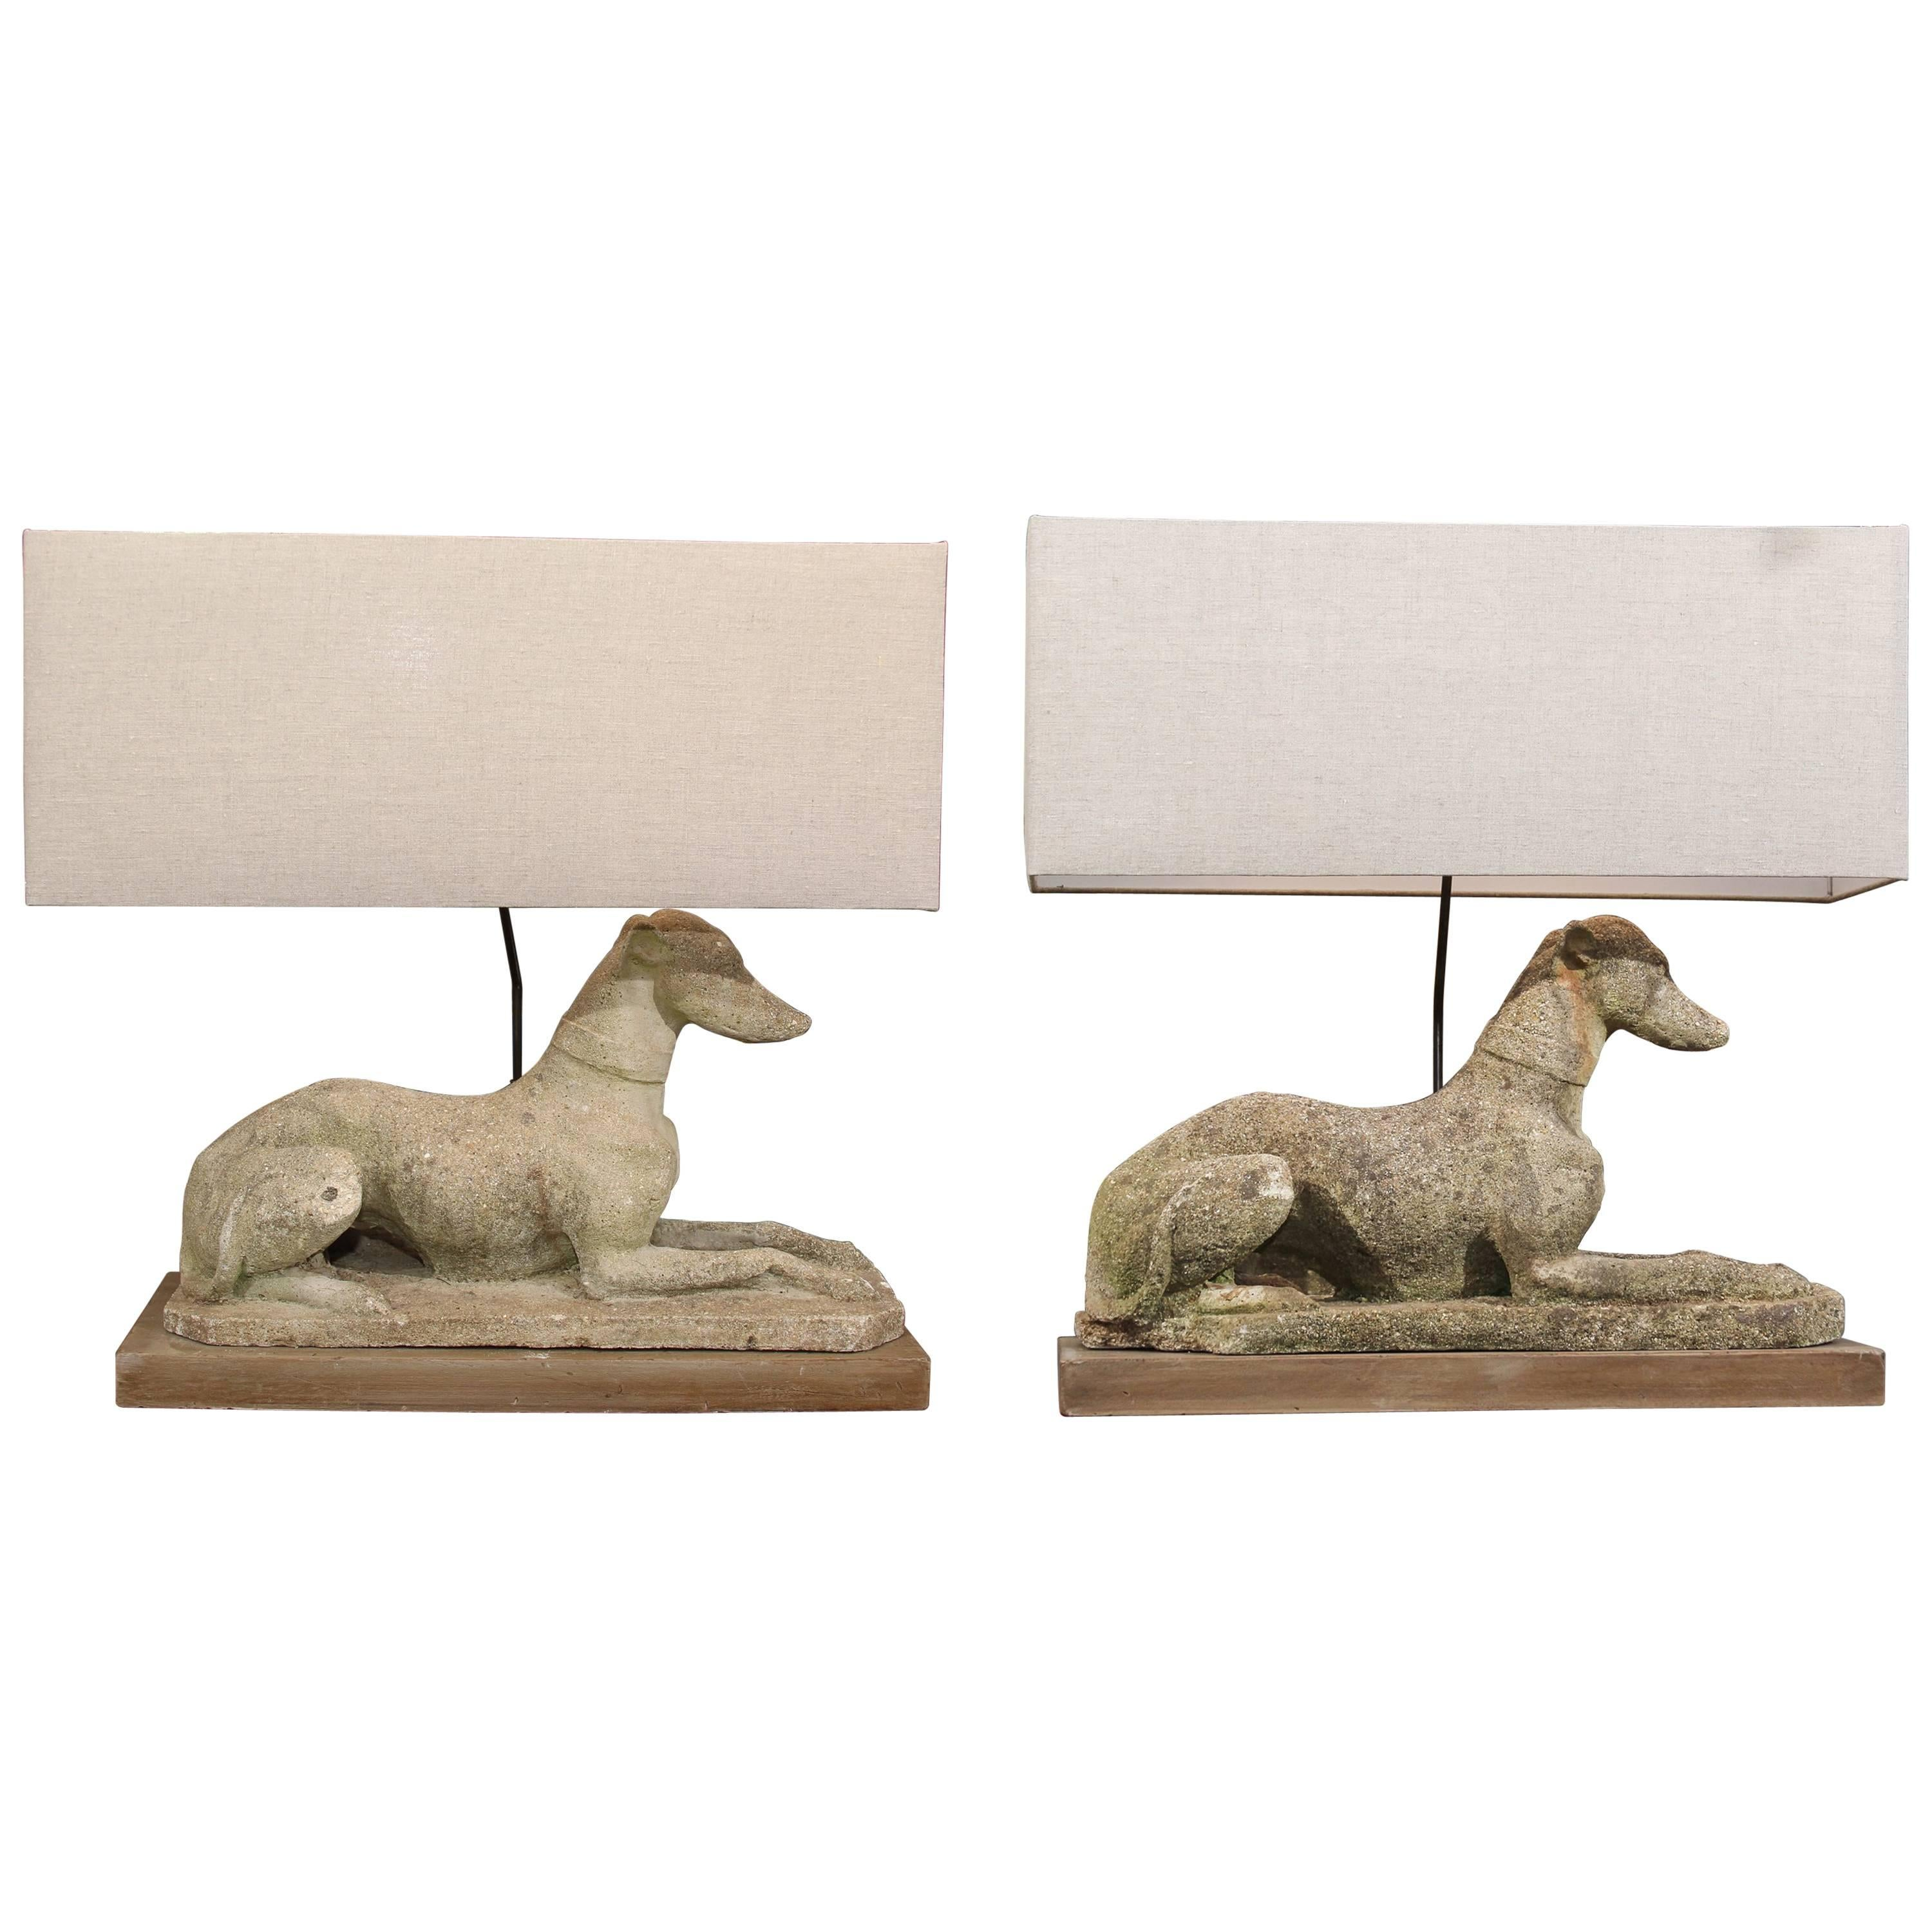 Grand Pair of Antique English Dogs with Custom Base and Linen Shades